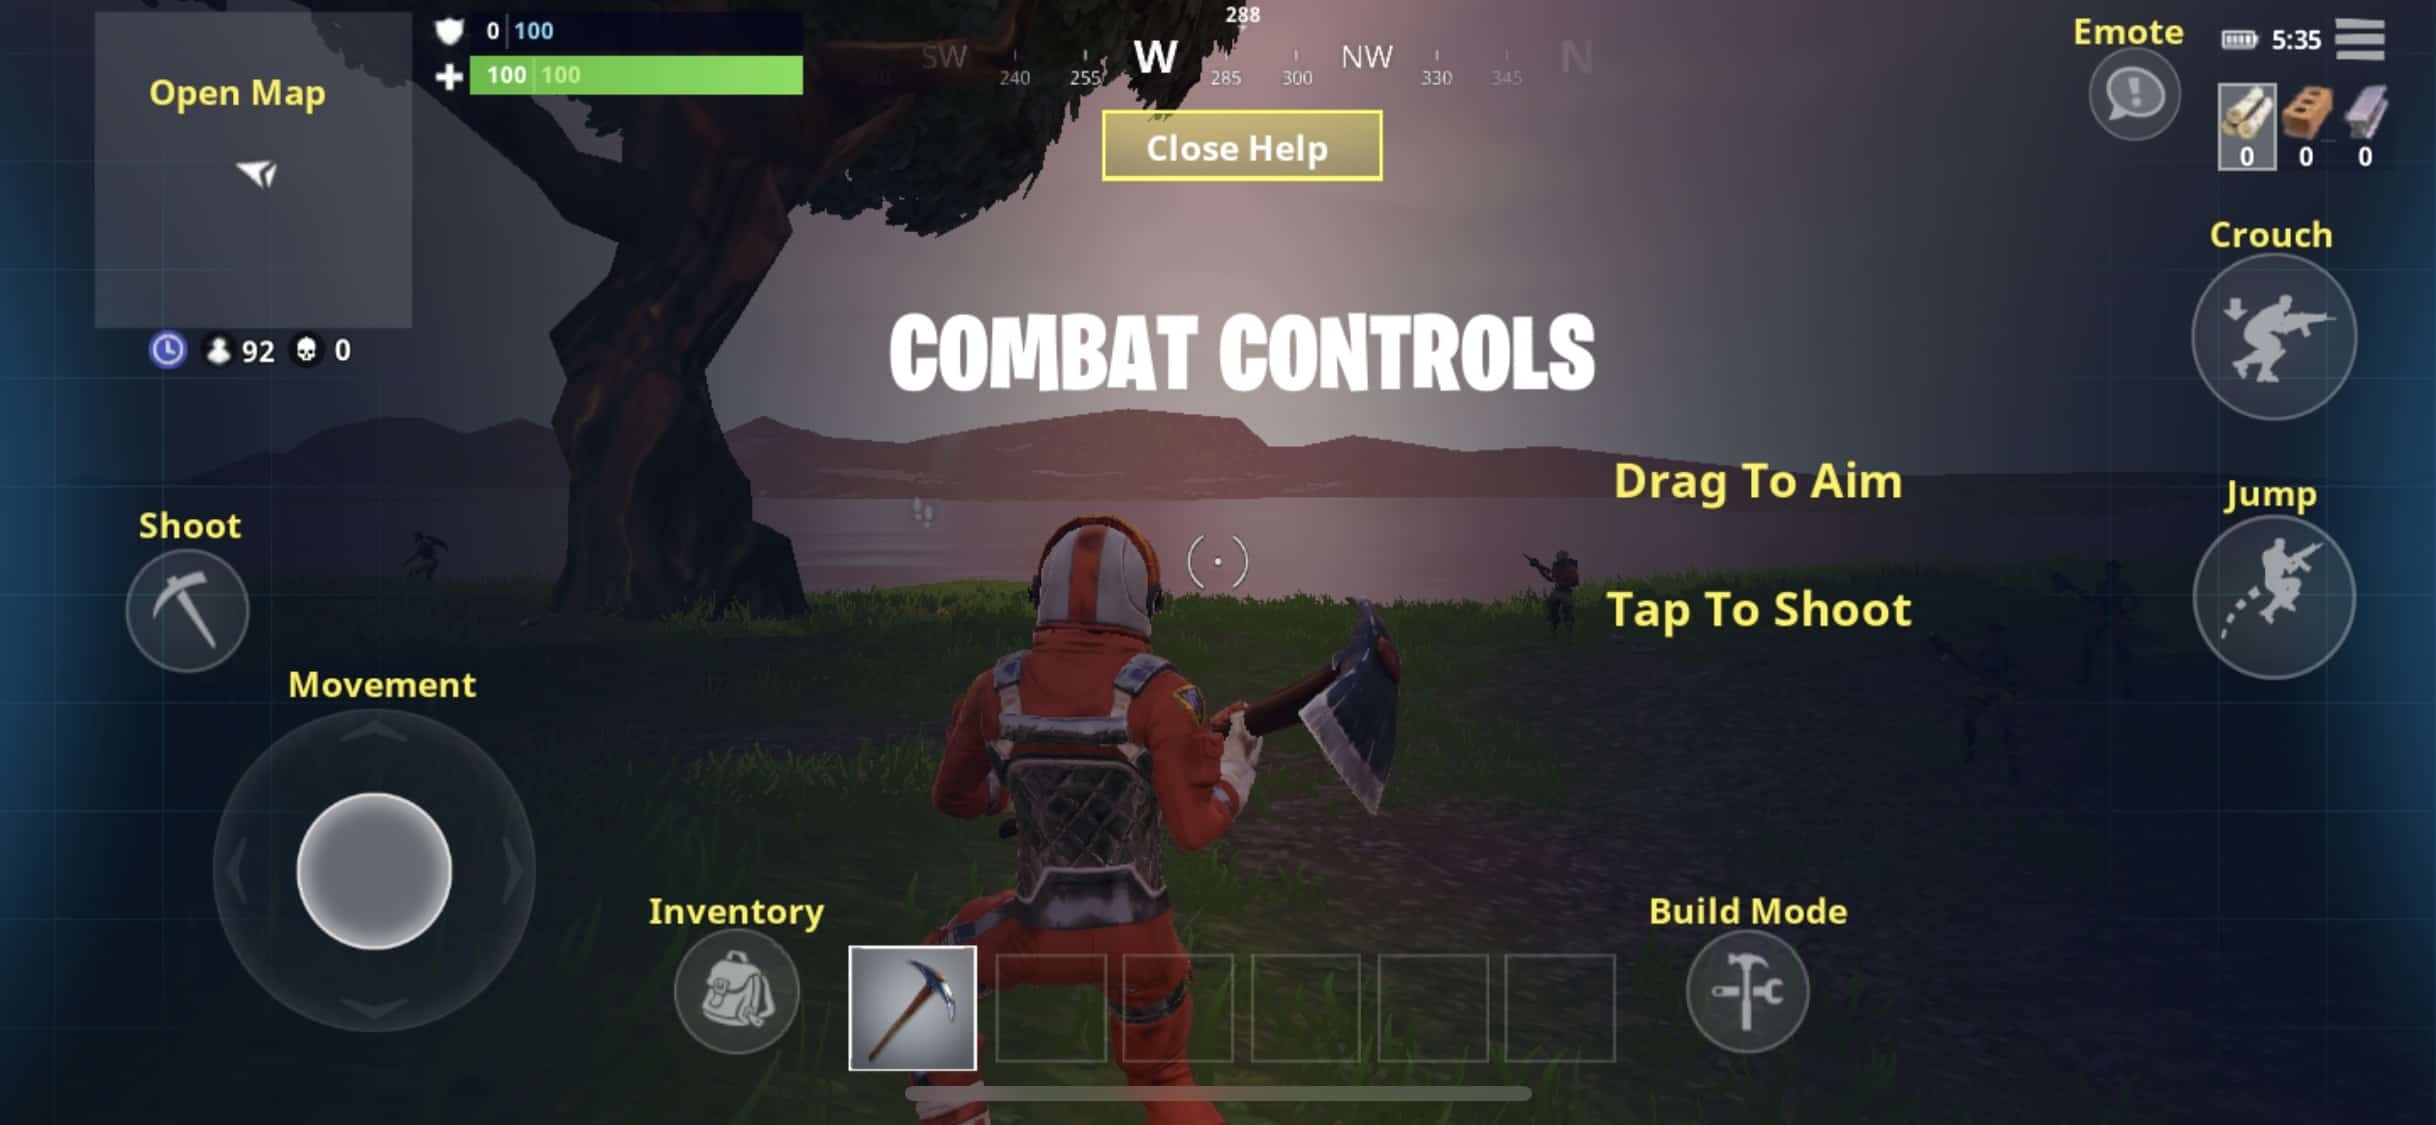 fortnite iphone controls - can a macbook air run fortnite